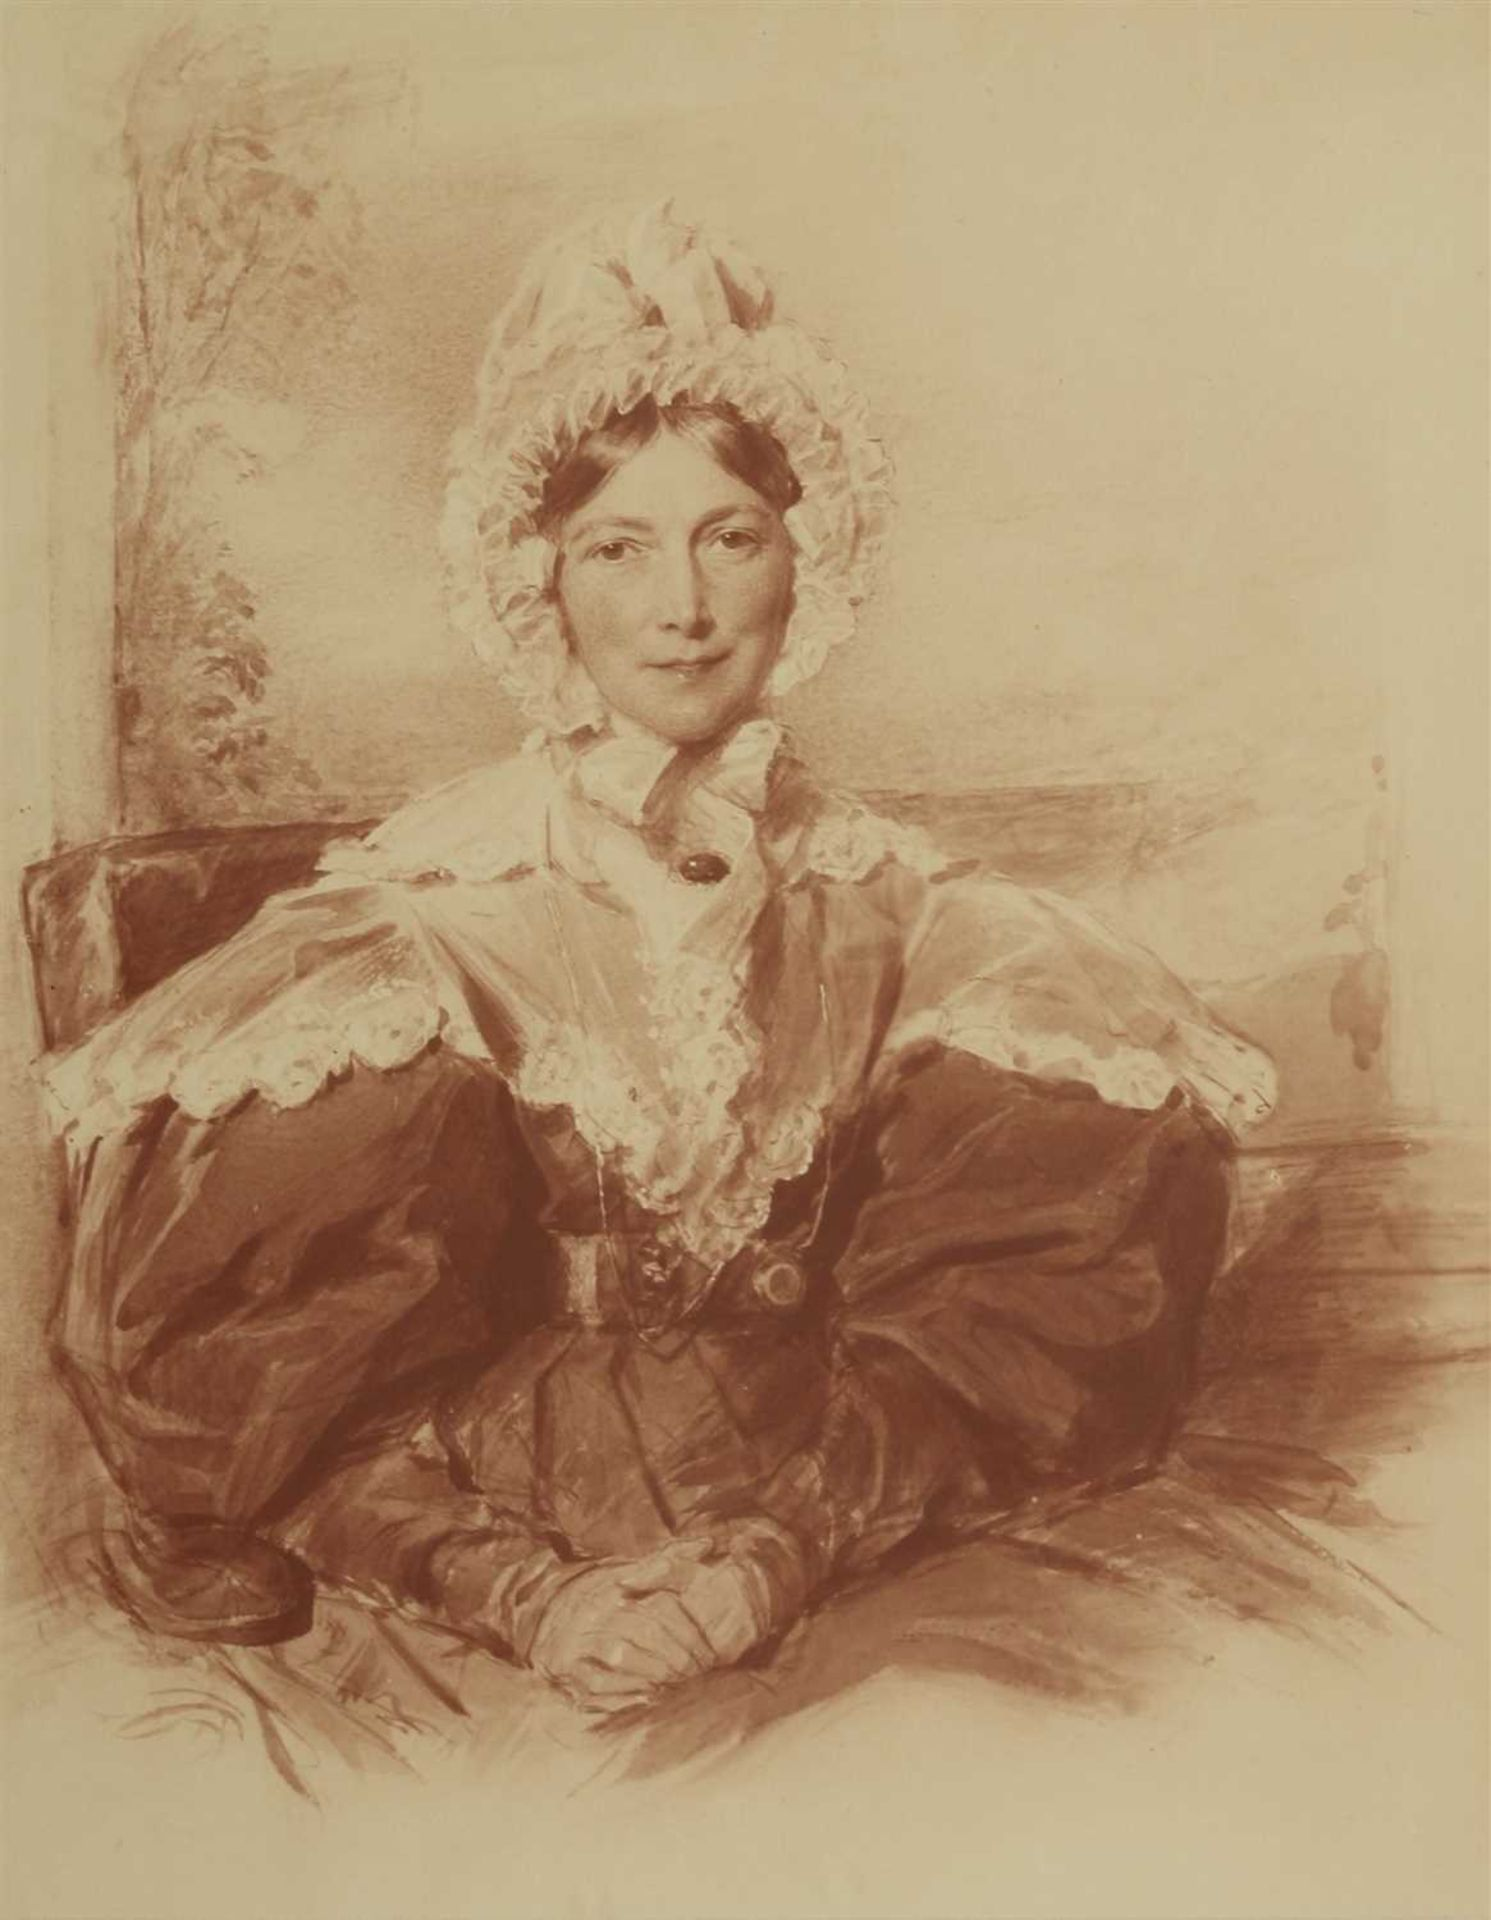 A collection of lithographic and photogravure portraits